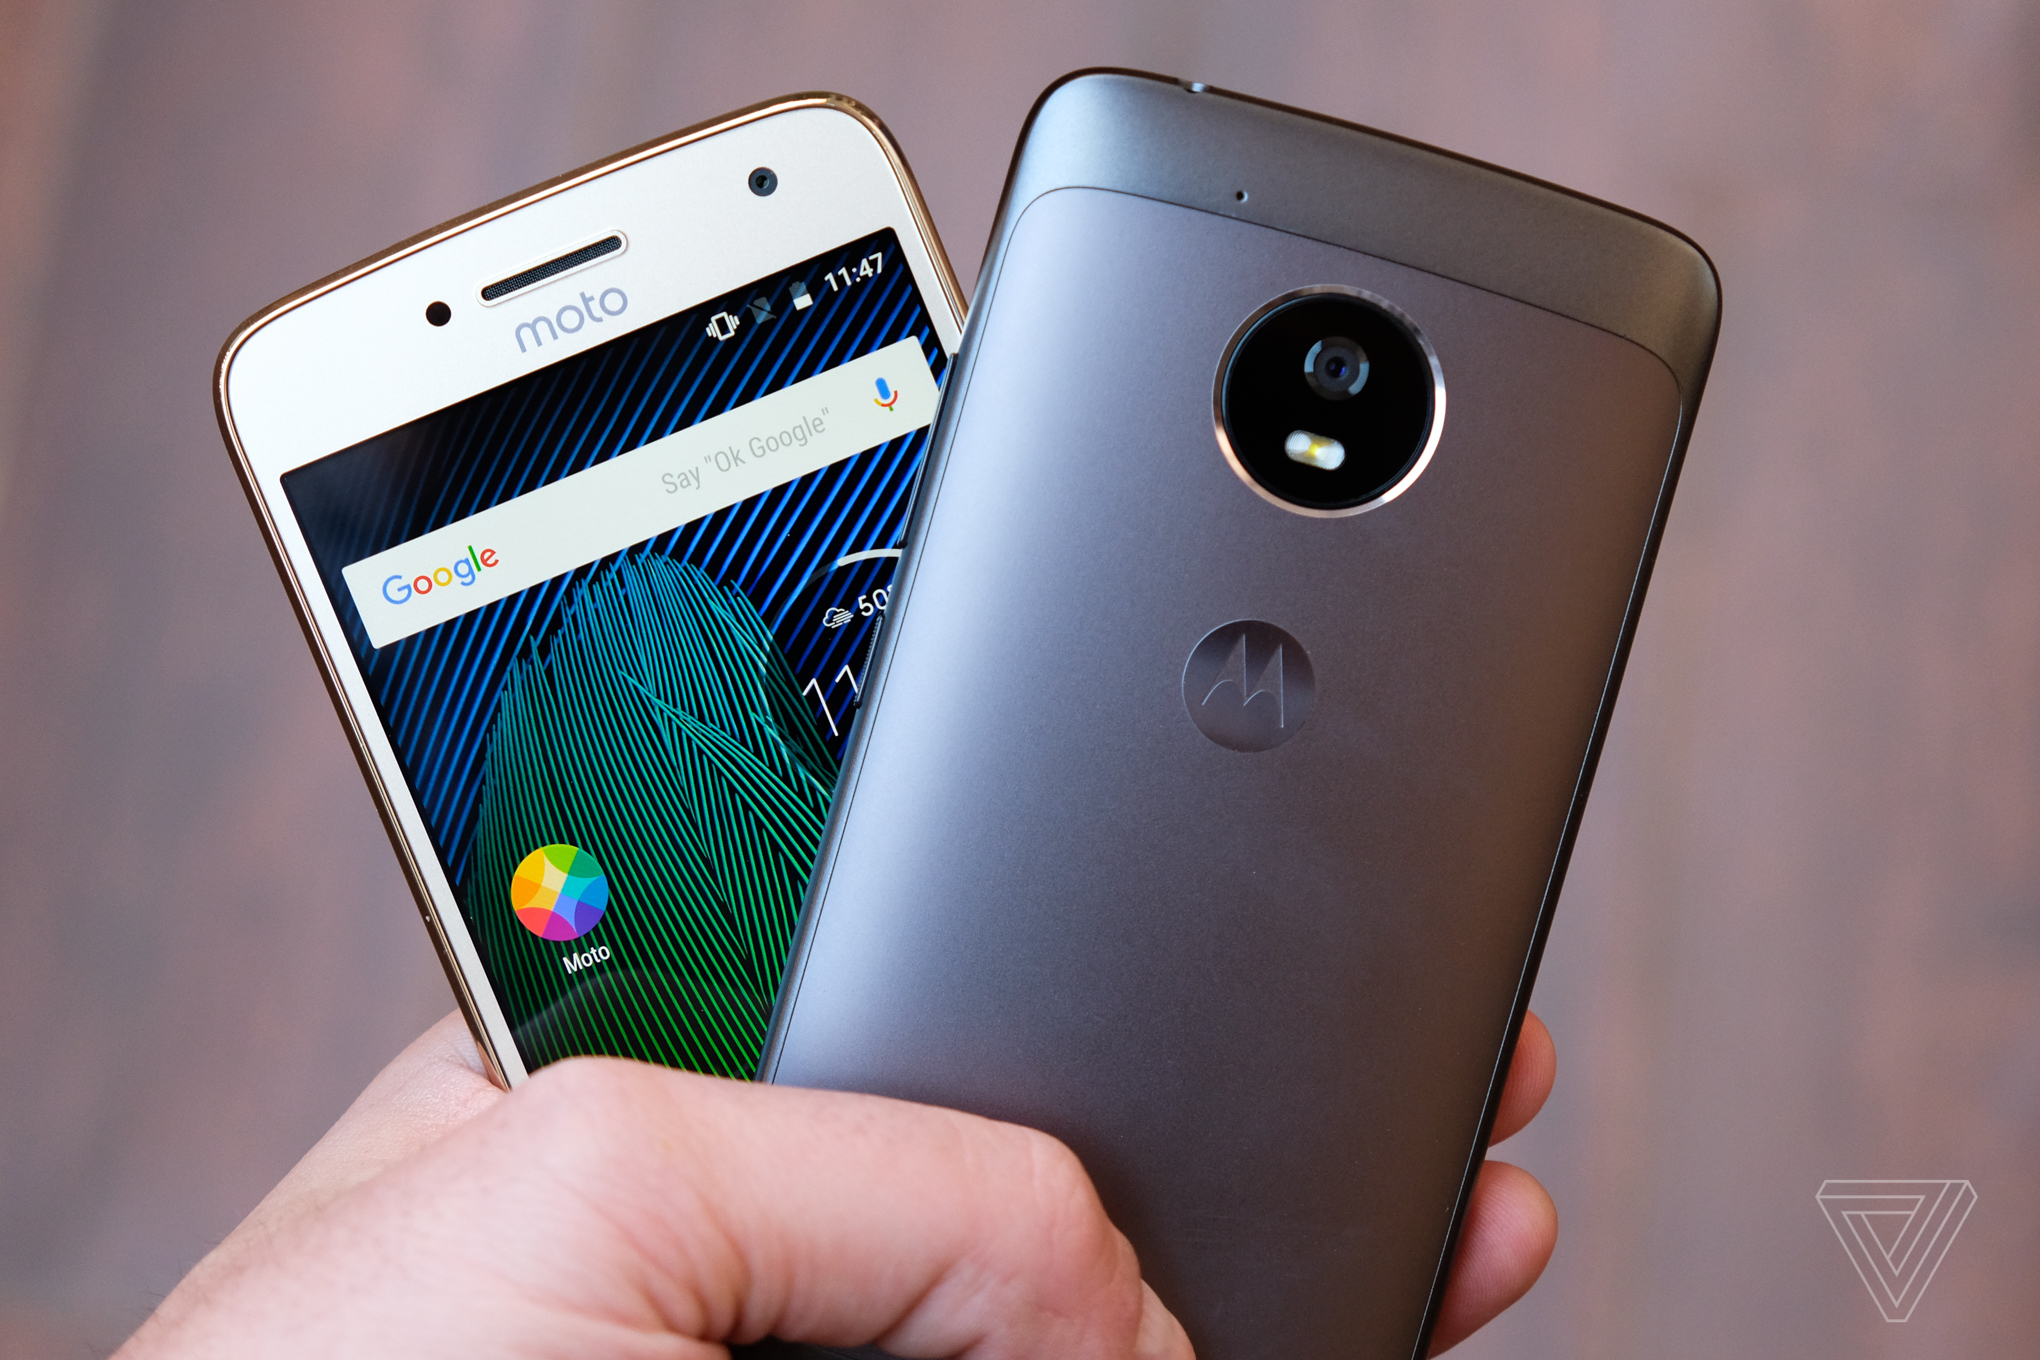 The Moto G5 and G5 Plus have metal designs and very ...